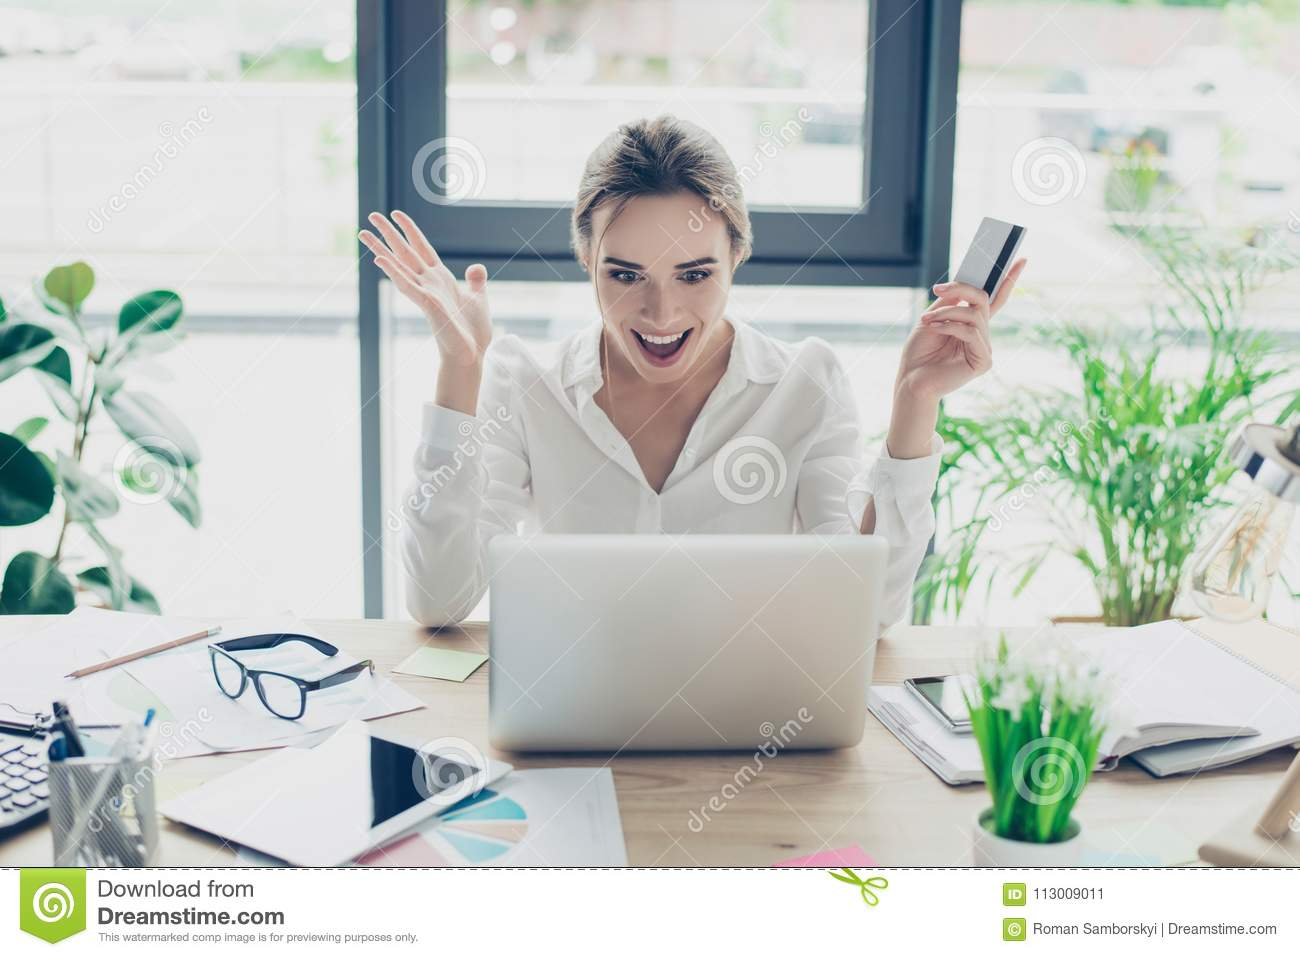 f0609a075b Excited business lady in formal wear is doing online shopping in internet.  She is relaxing and buying goods easily, nice wrk place, windows behind  her, ...